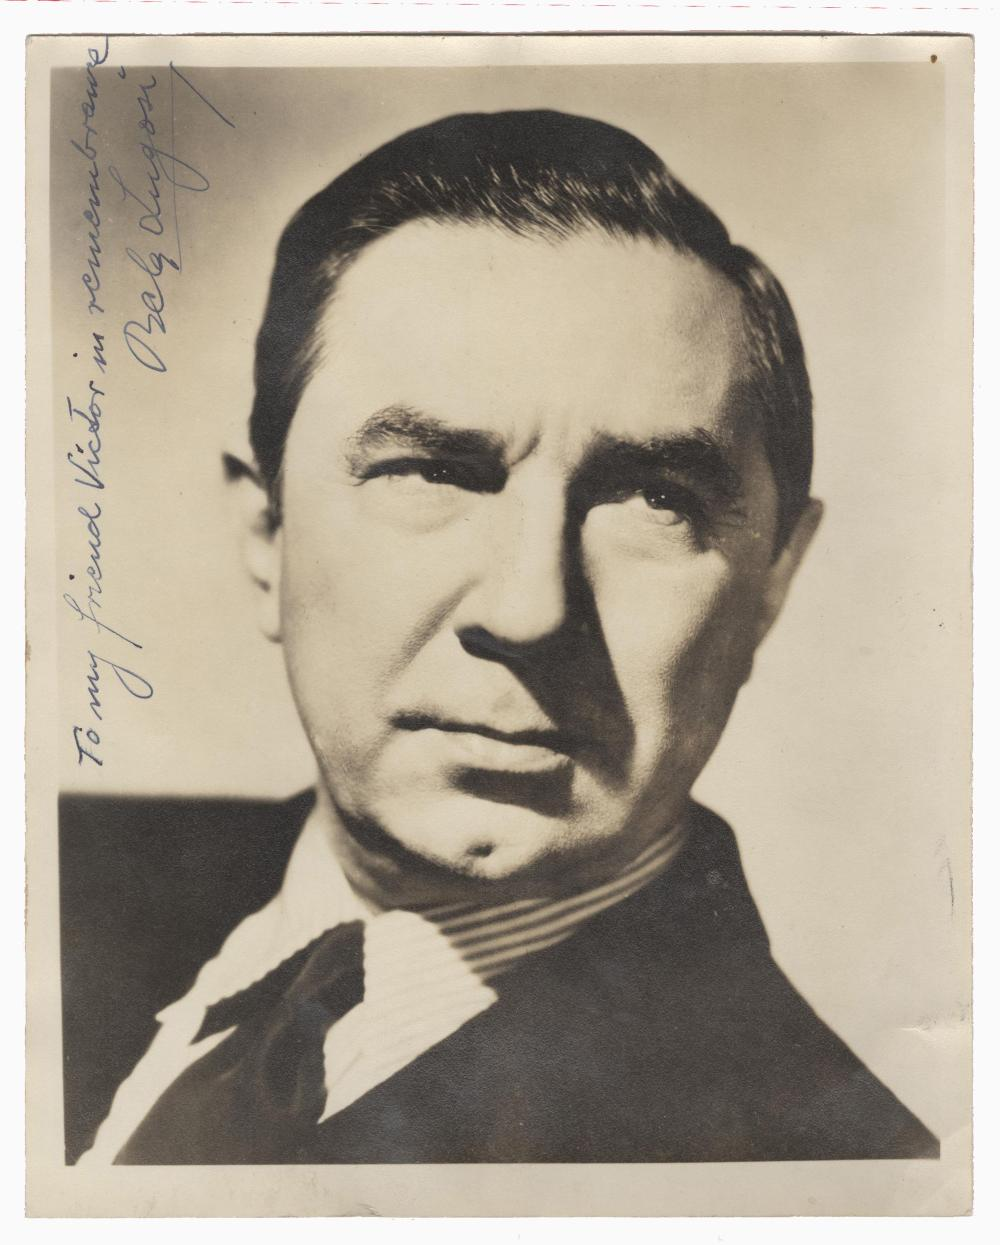 Bela Lugosi Signed Large B&W Photo with Theater Program, 1948